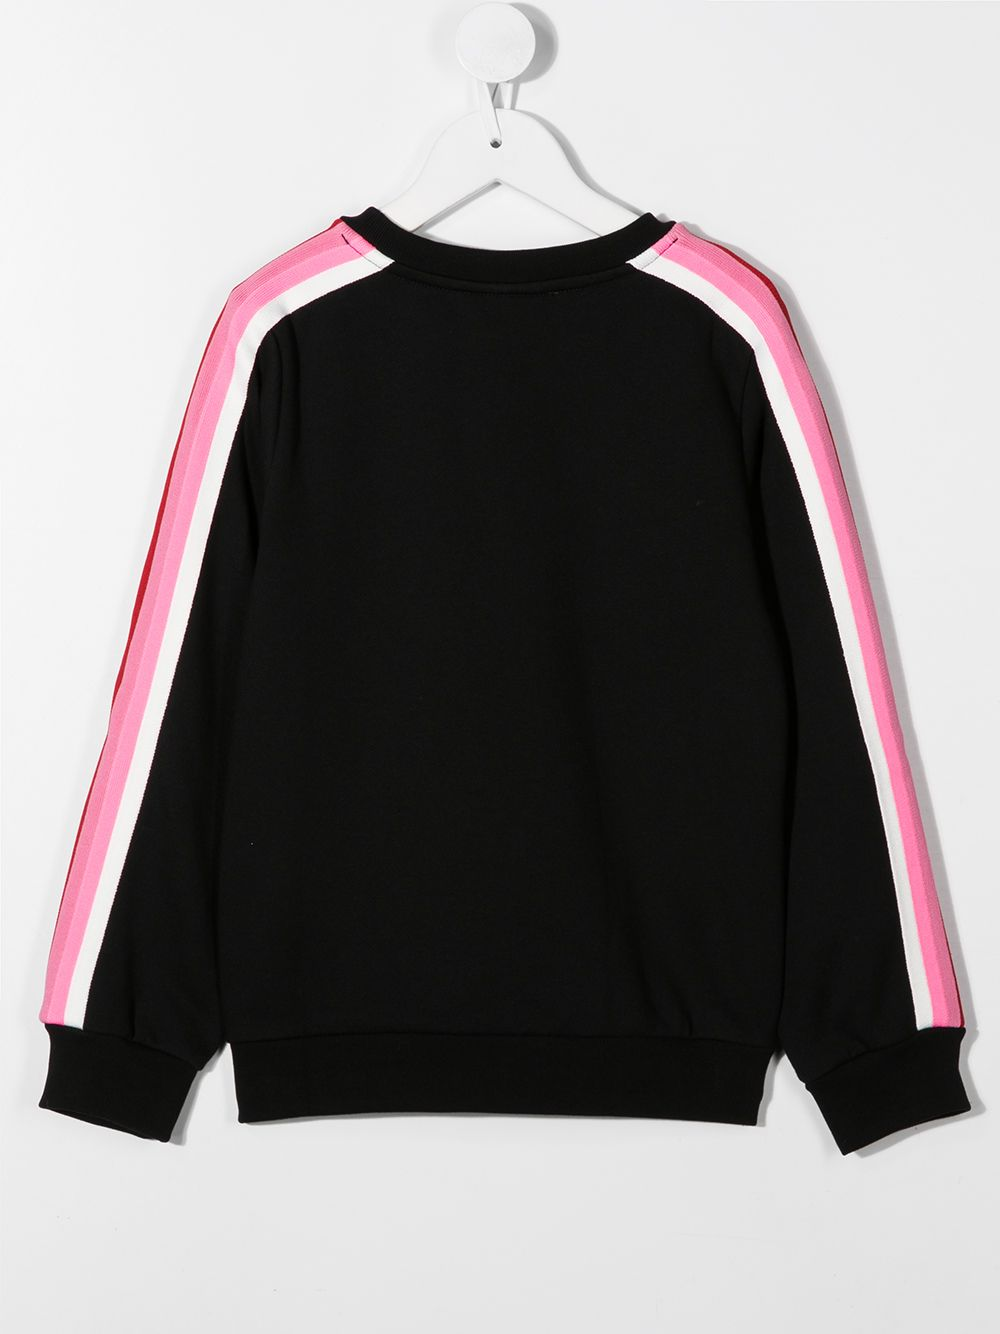 FENDI KIDS Raised-Logo Sweatshirt Black